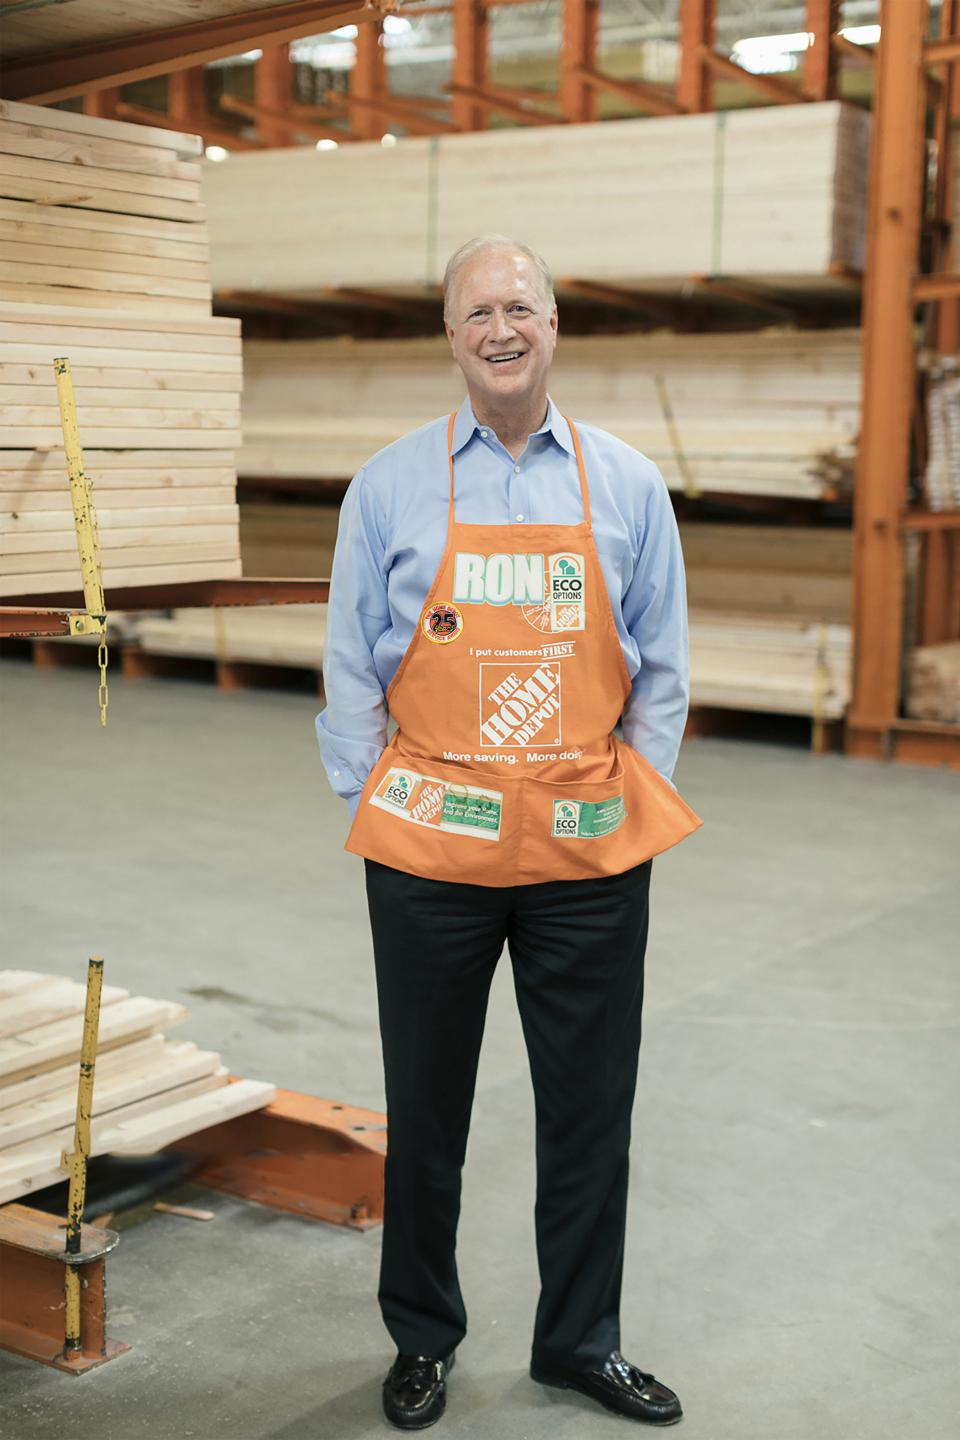 Purpose At Work: How Home Depot Elevates Sustainability and Impact to Drive Growth